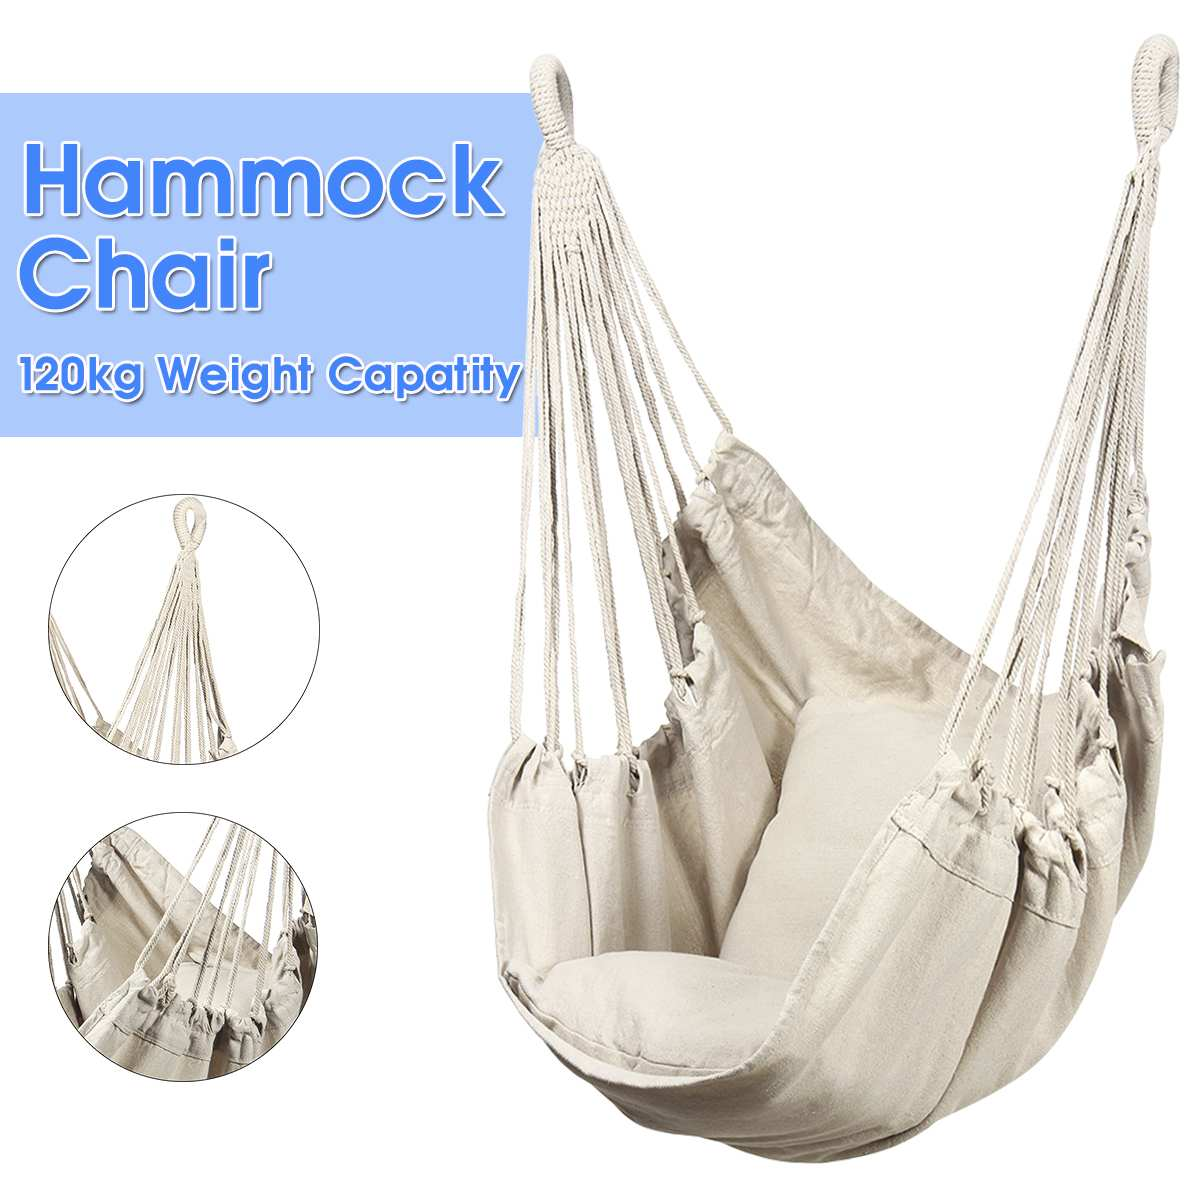 Instyle Bold Cotton Rope Hammock Swing Chair Patio Swing Outdoor Garden Hanging Chair Travel Camping Hammock Silla Colgante